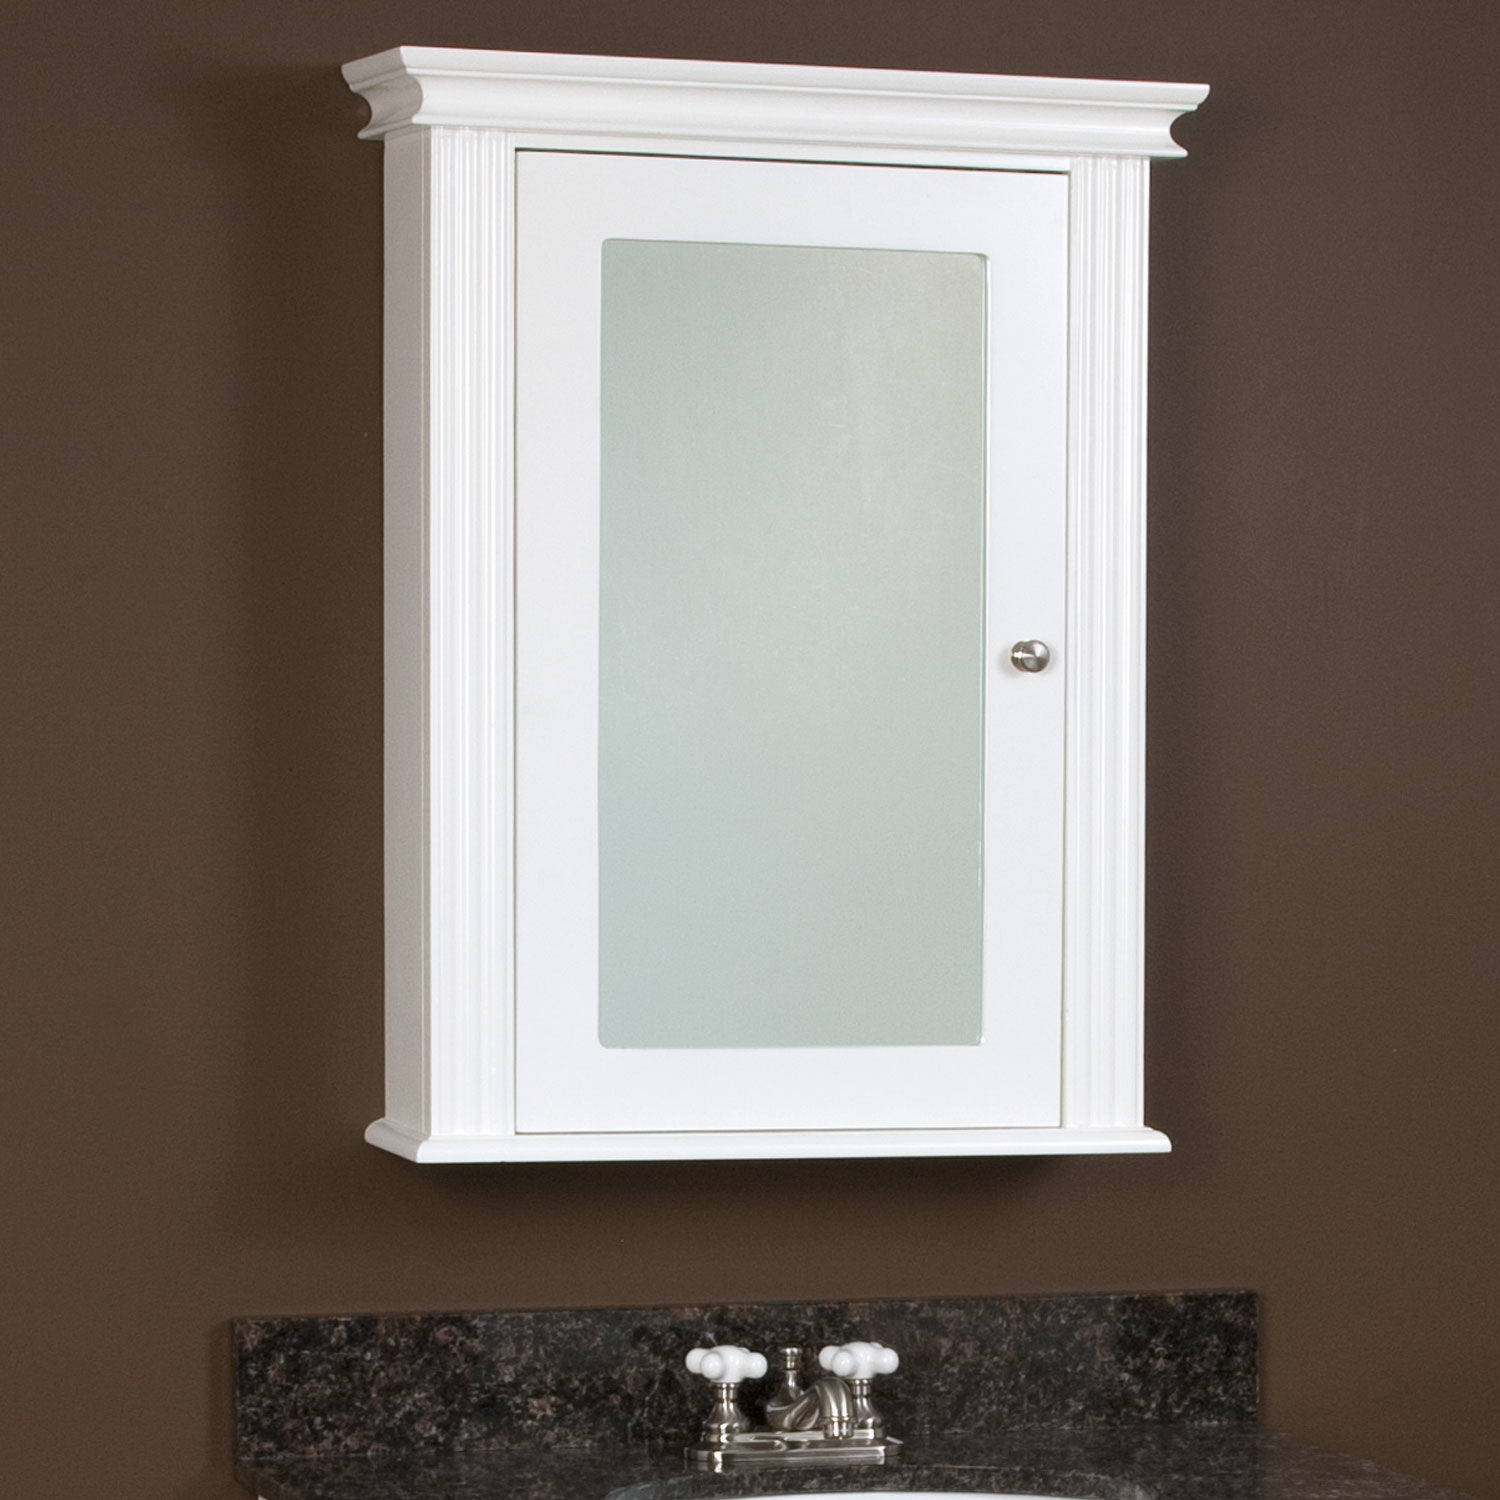 Permalink to Corner Bathroom Cabinet Without Mirror